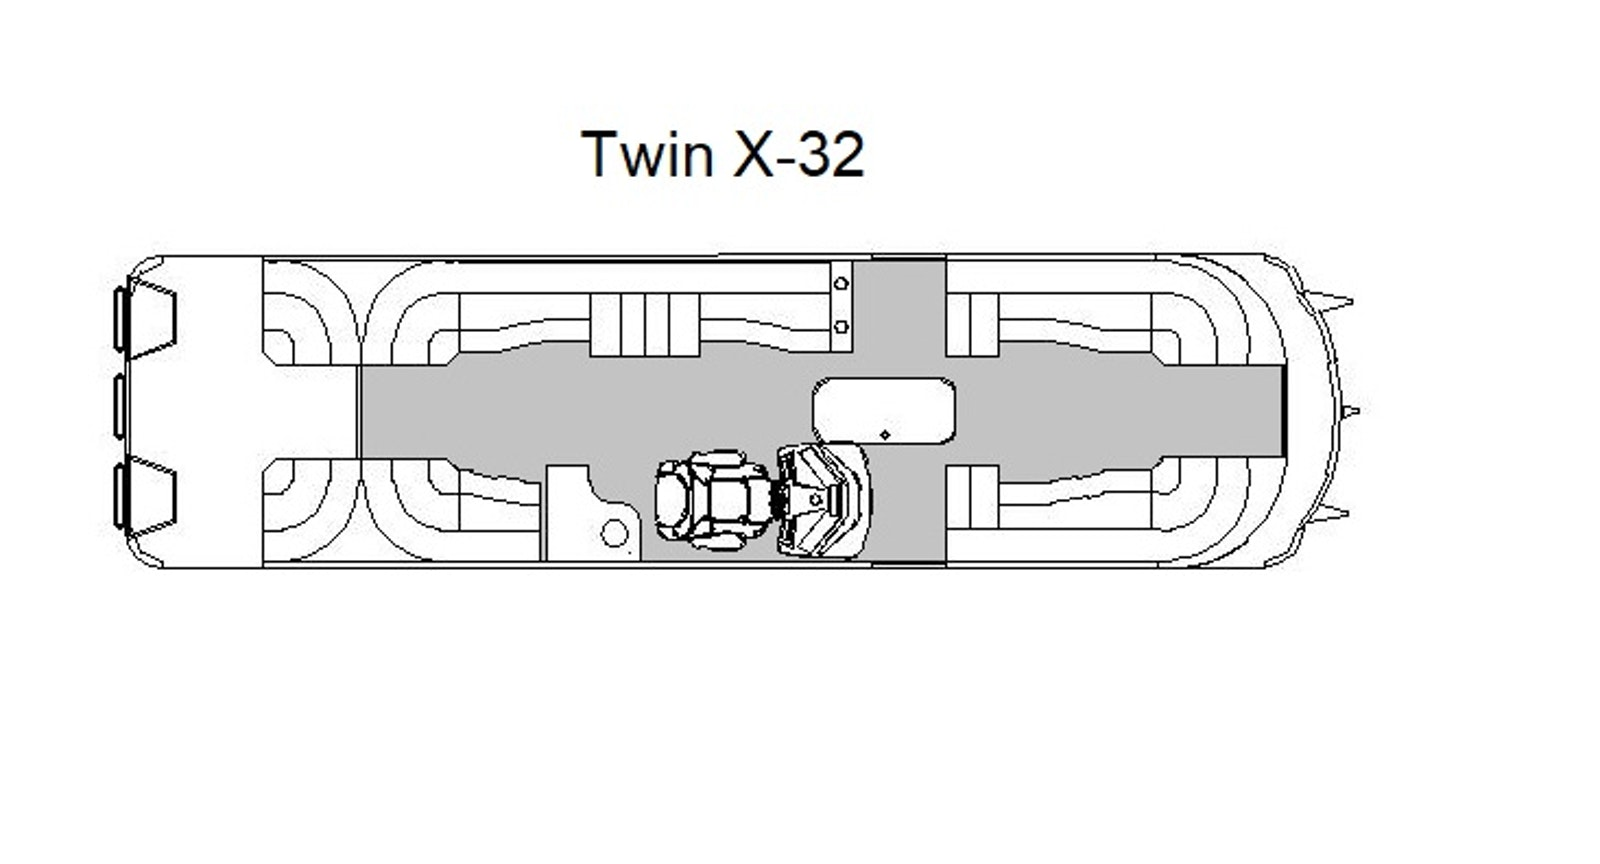 The Aloha Twin X-32